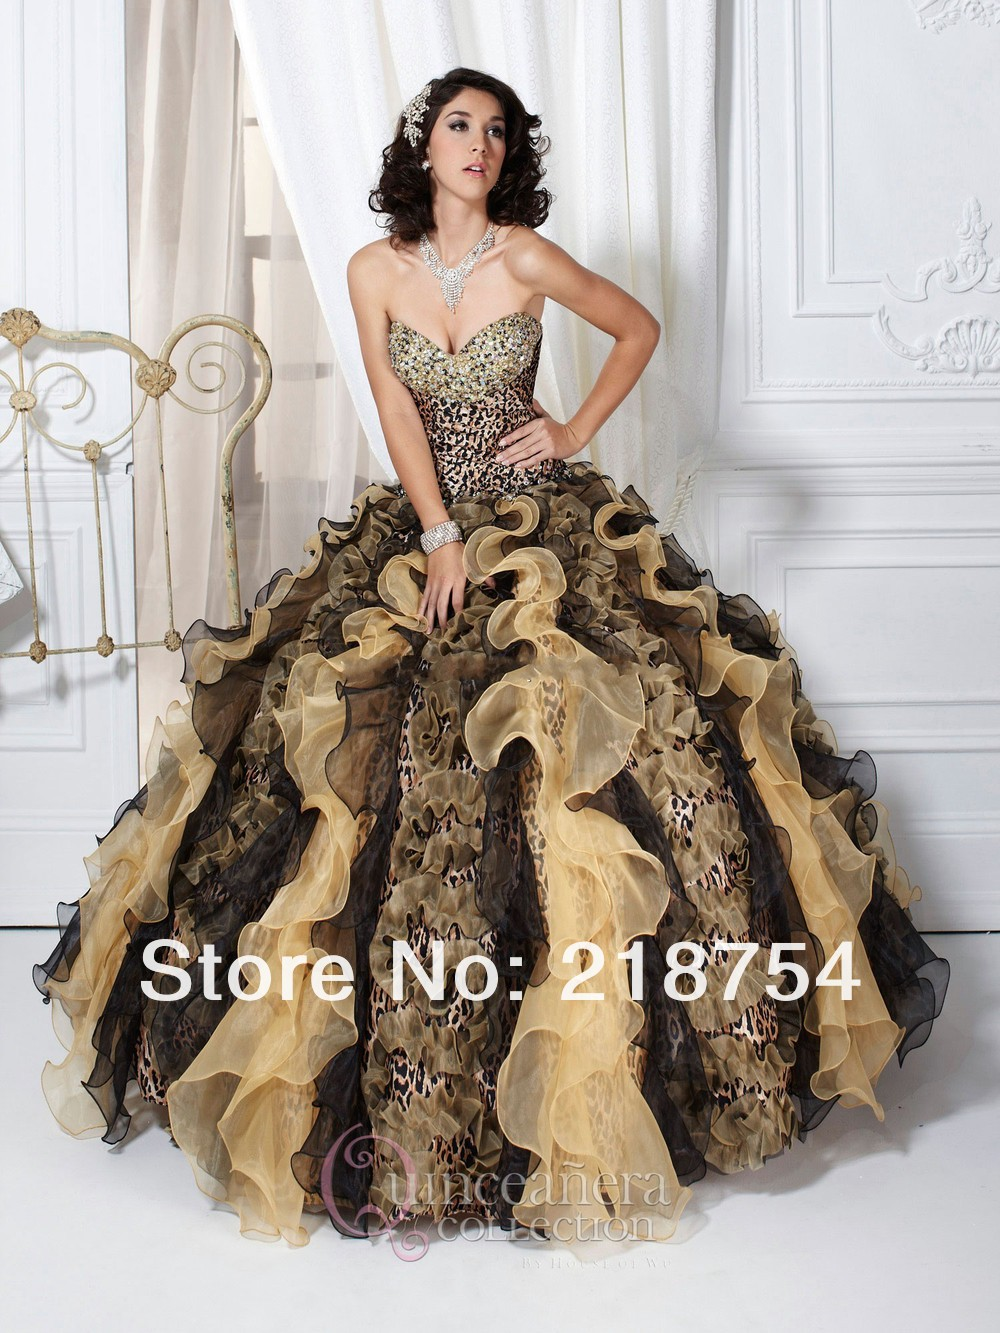 Aliexpress.com : Buy Free Shipping Sweetheart Ball Gowns Beaded Tiered Bottom  Champange Brown Organza Quinceanera Dresses Classic Prom Gowns 2013 from Reliable quinceanera red dresses suppliers on Lhasa Roland_love